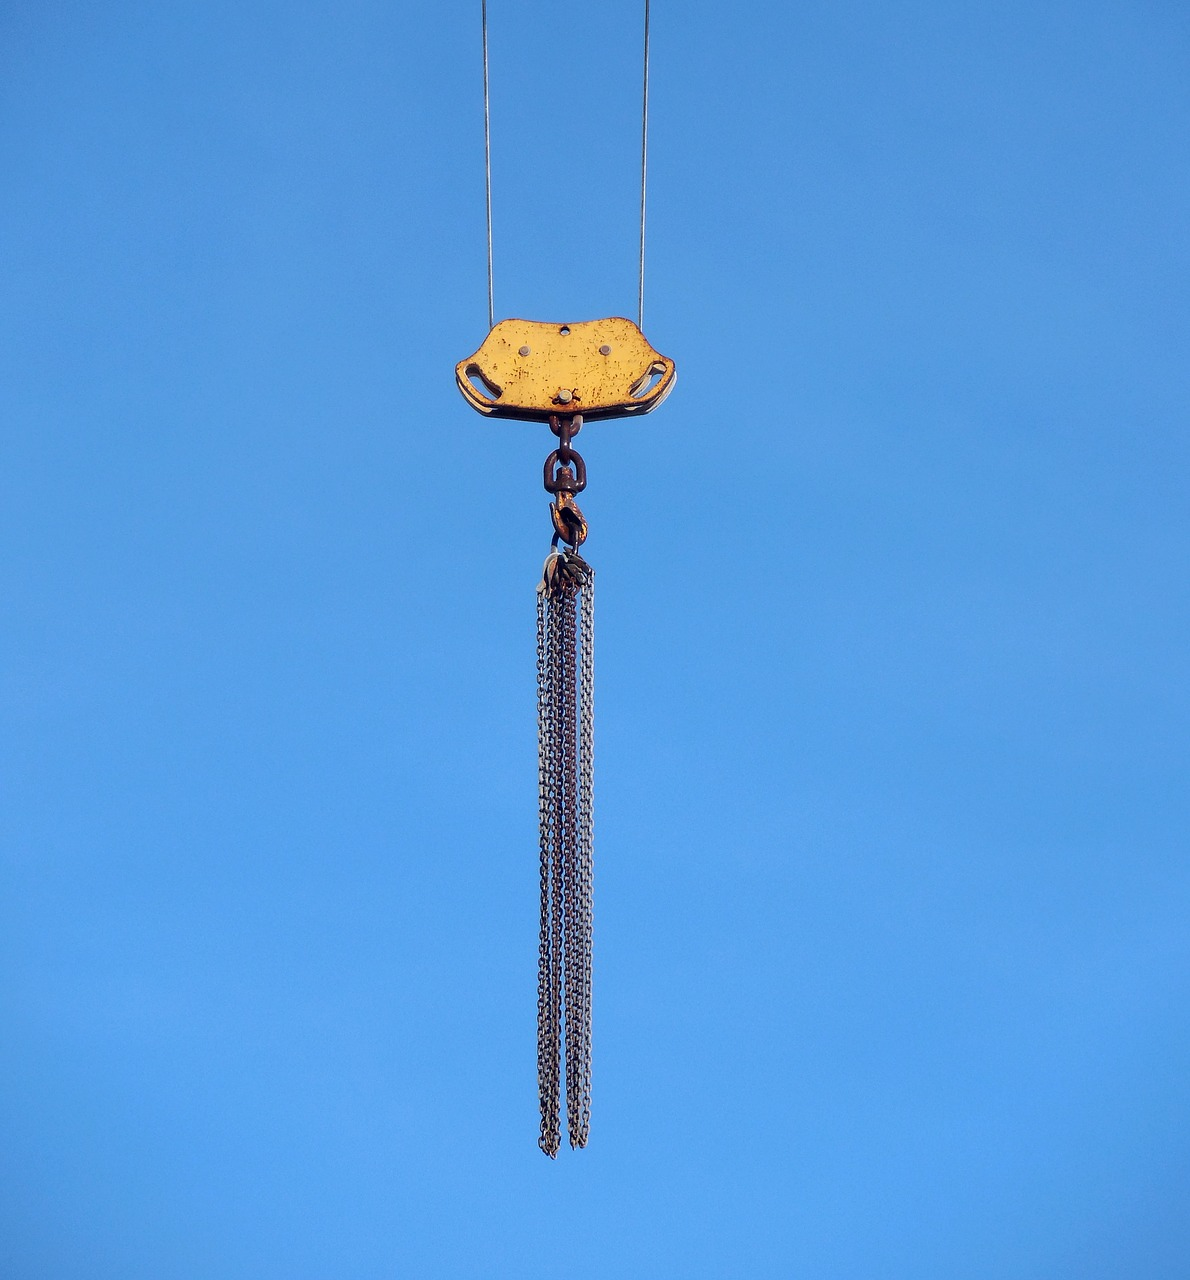 crane hoist slings free photo